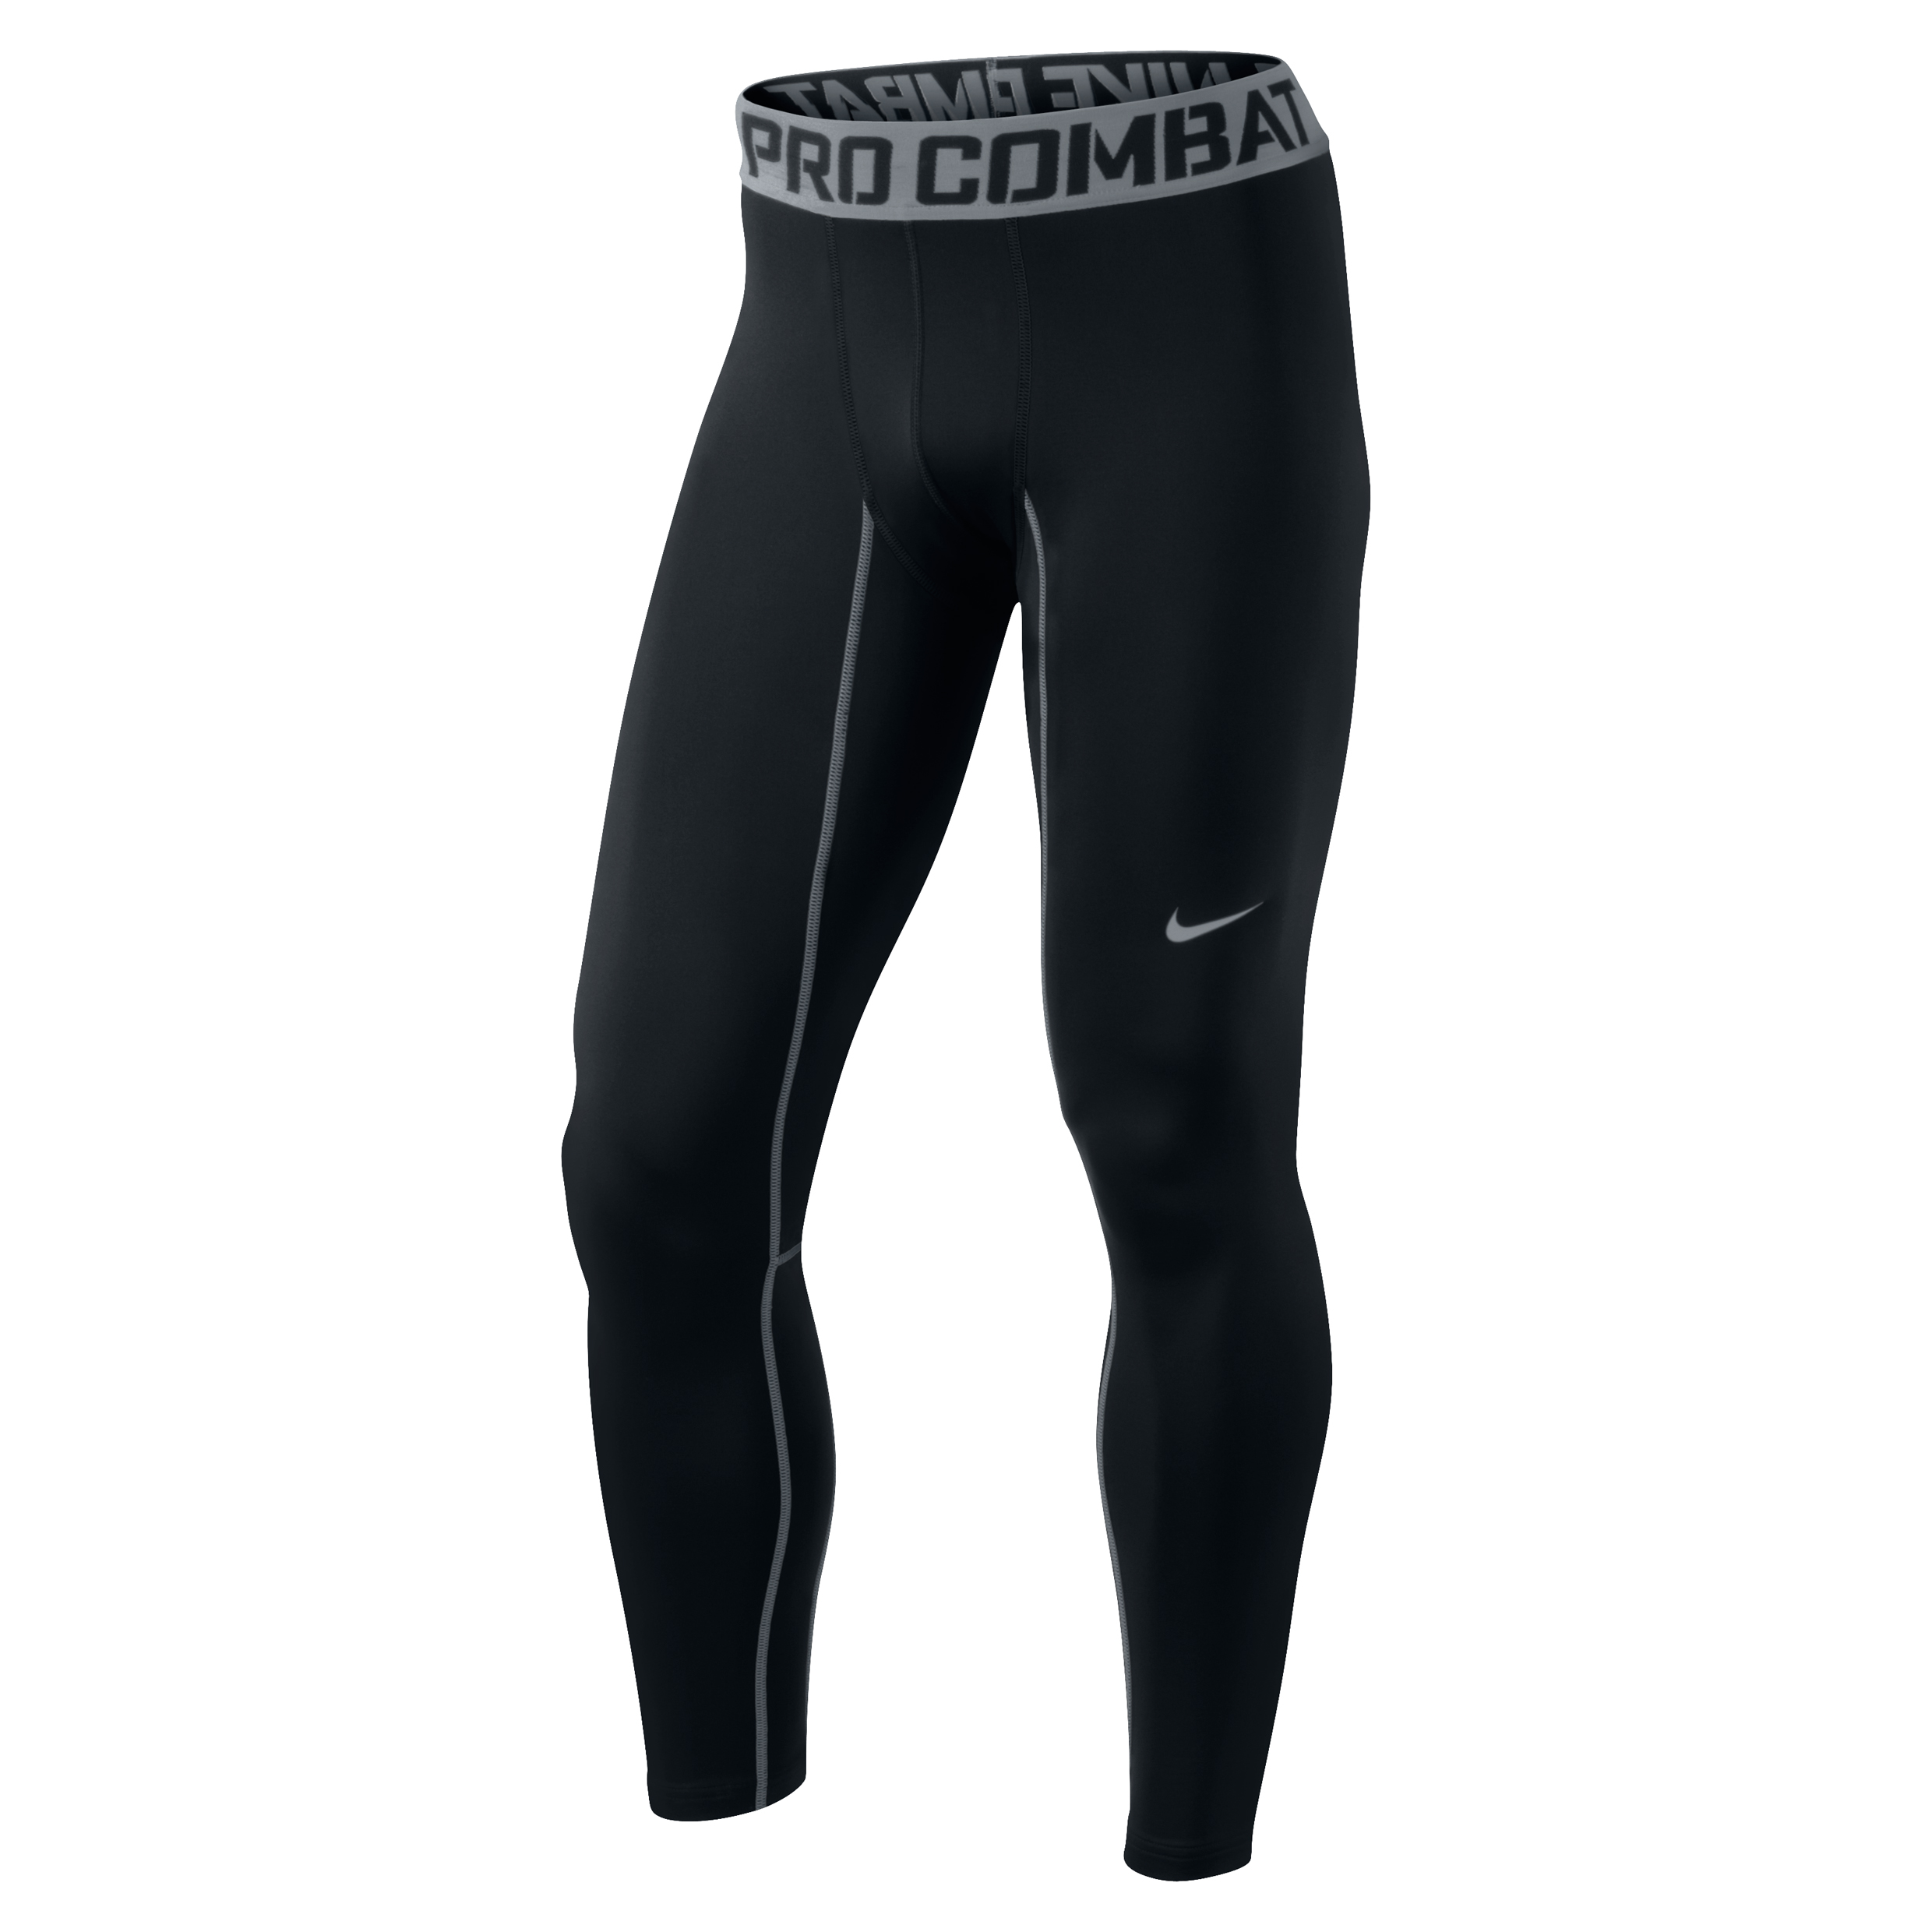 Nike Pro Combat Hyperwarm Dri-Fit Comp Tight 2.0 Black